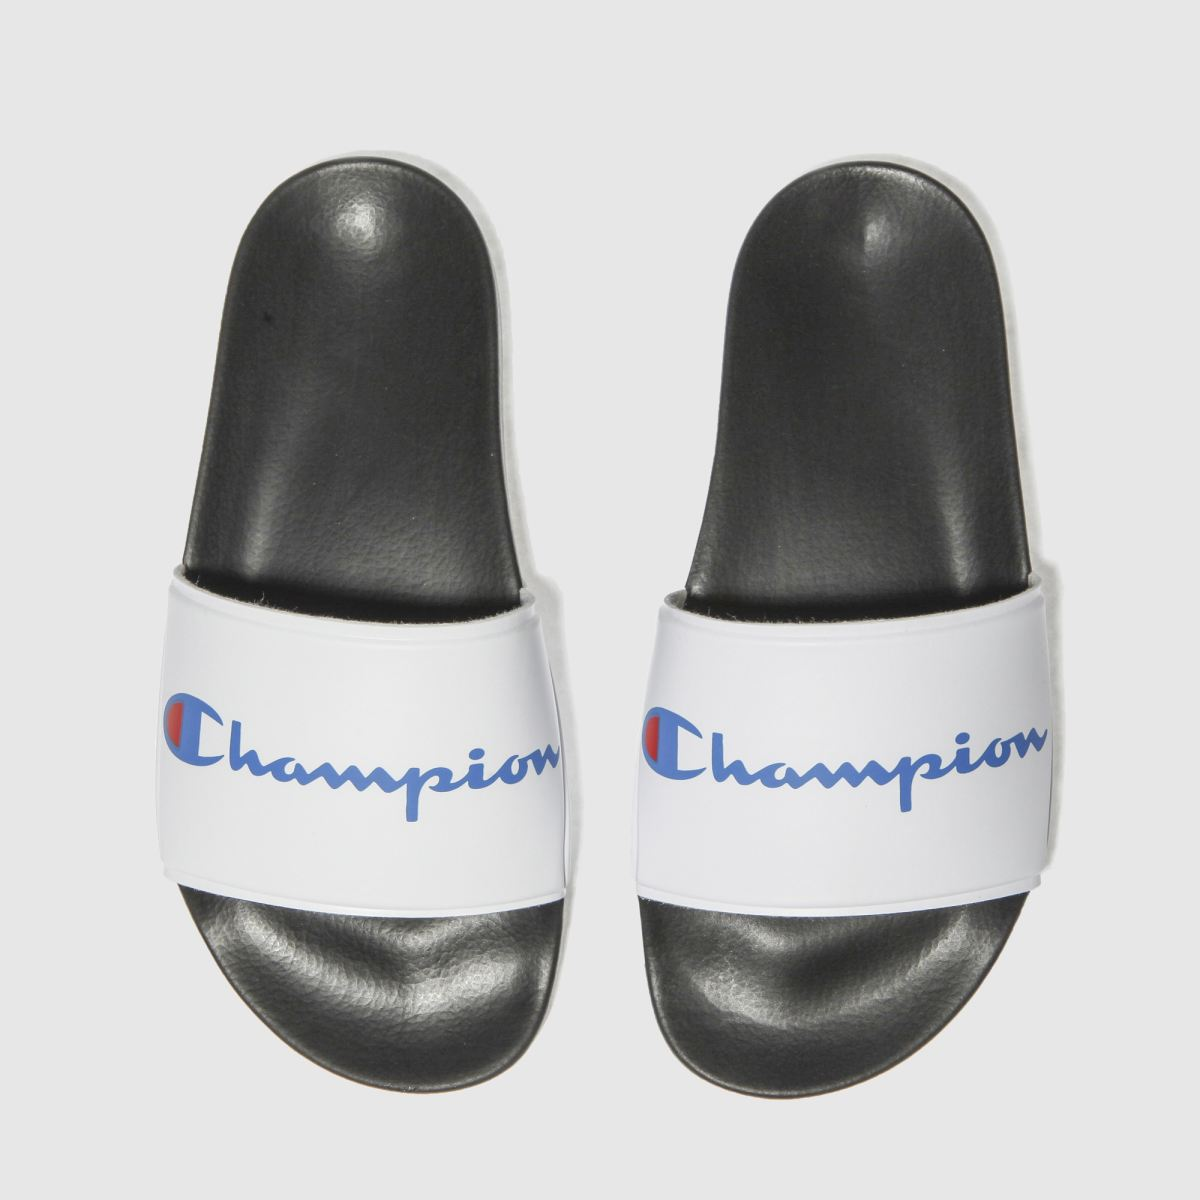 Champion Black & White Multi- Lido Printed Sandals